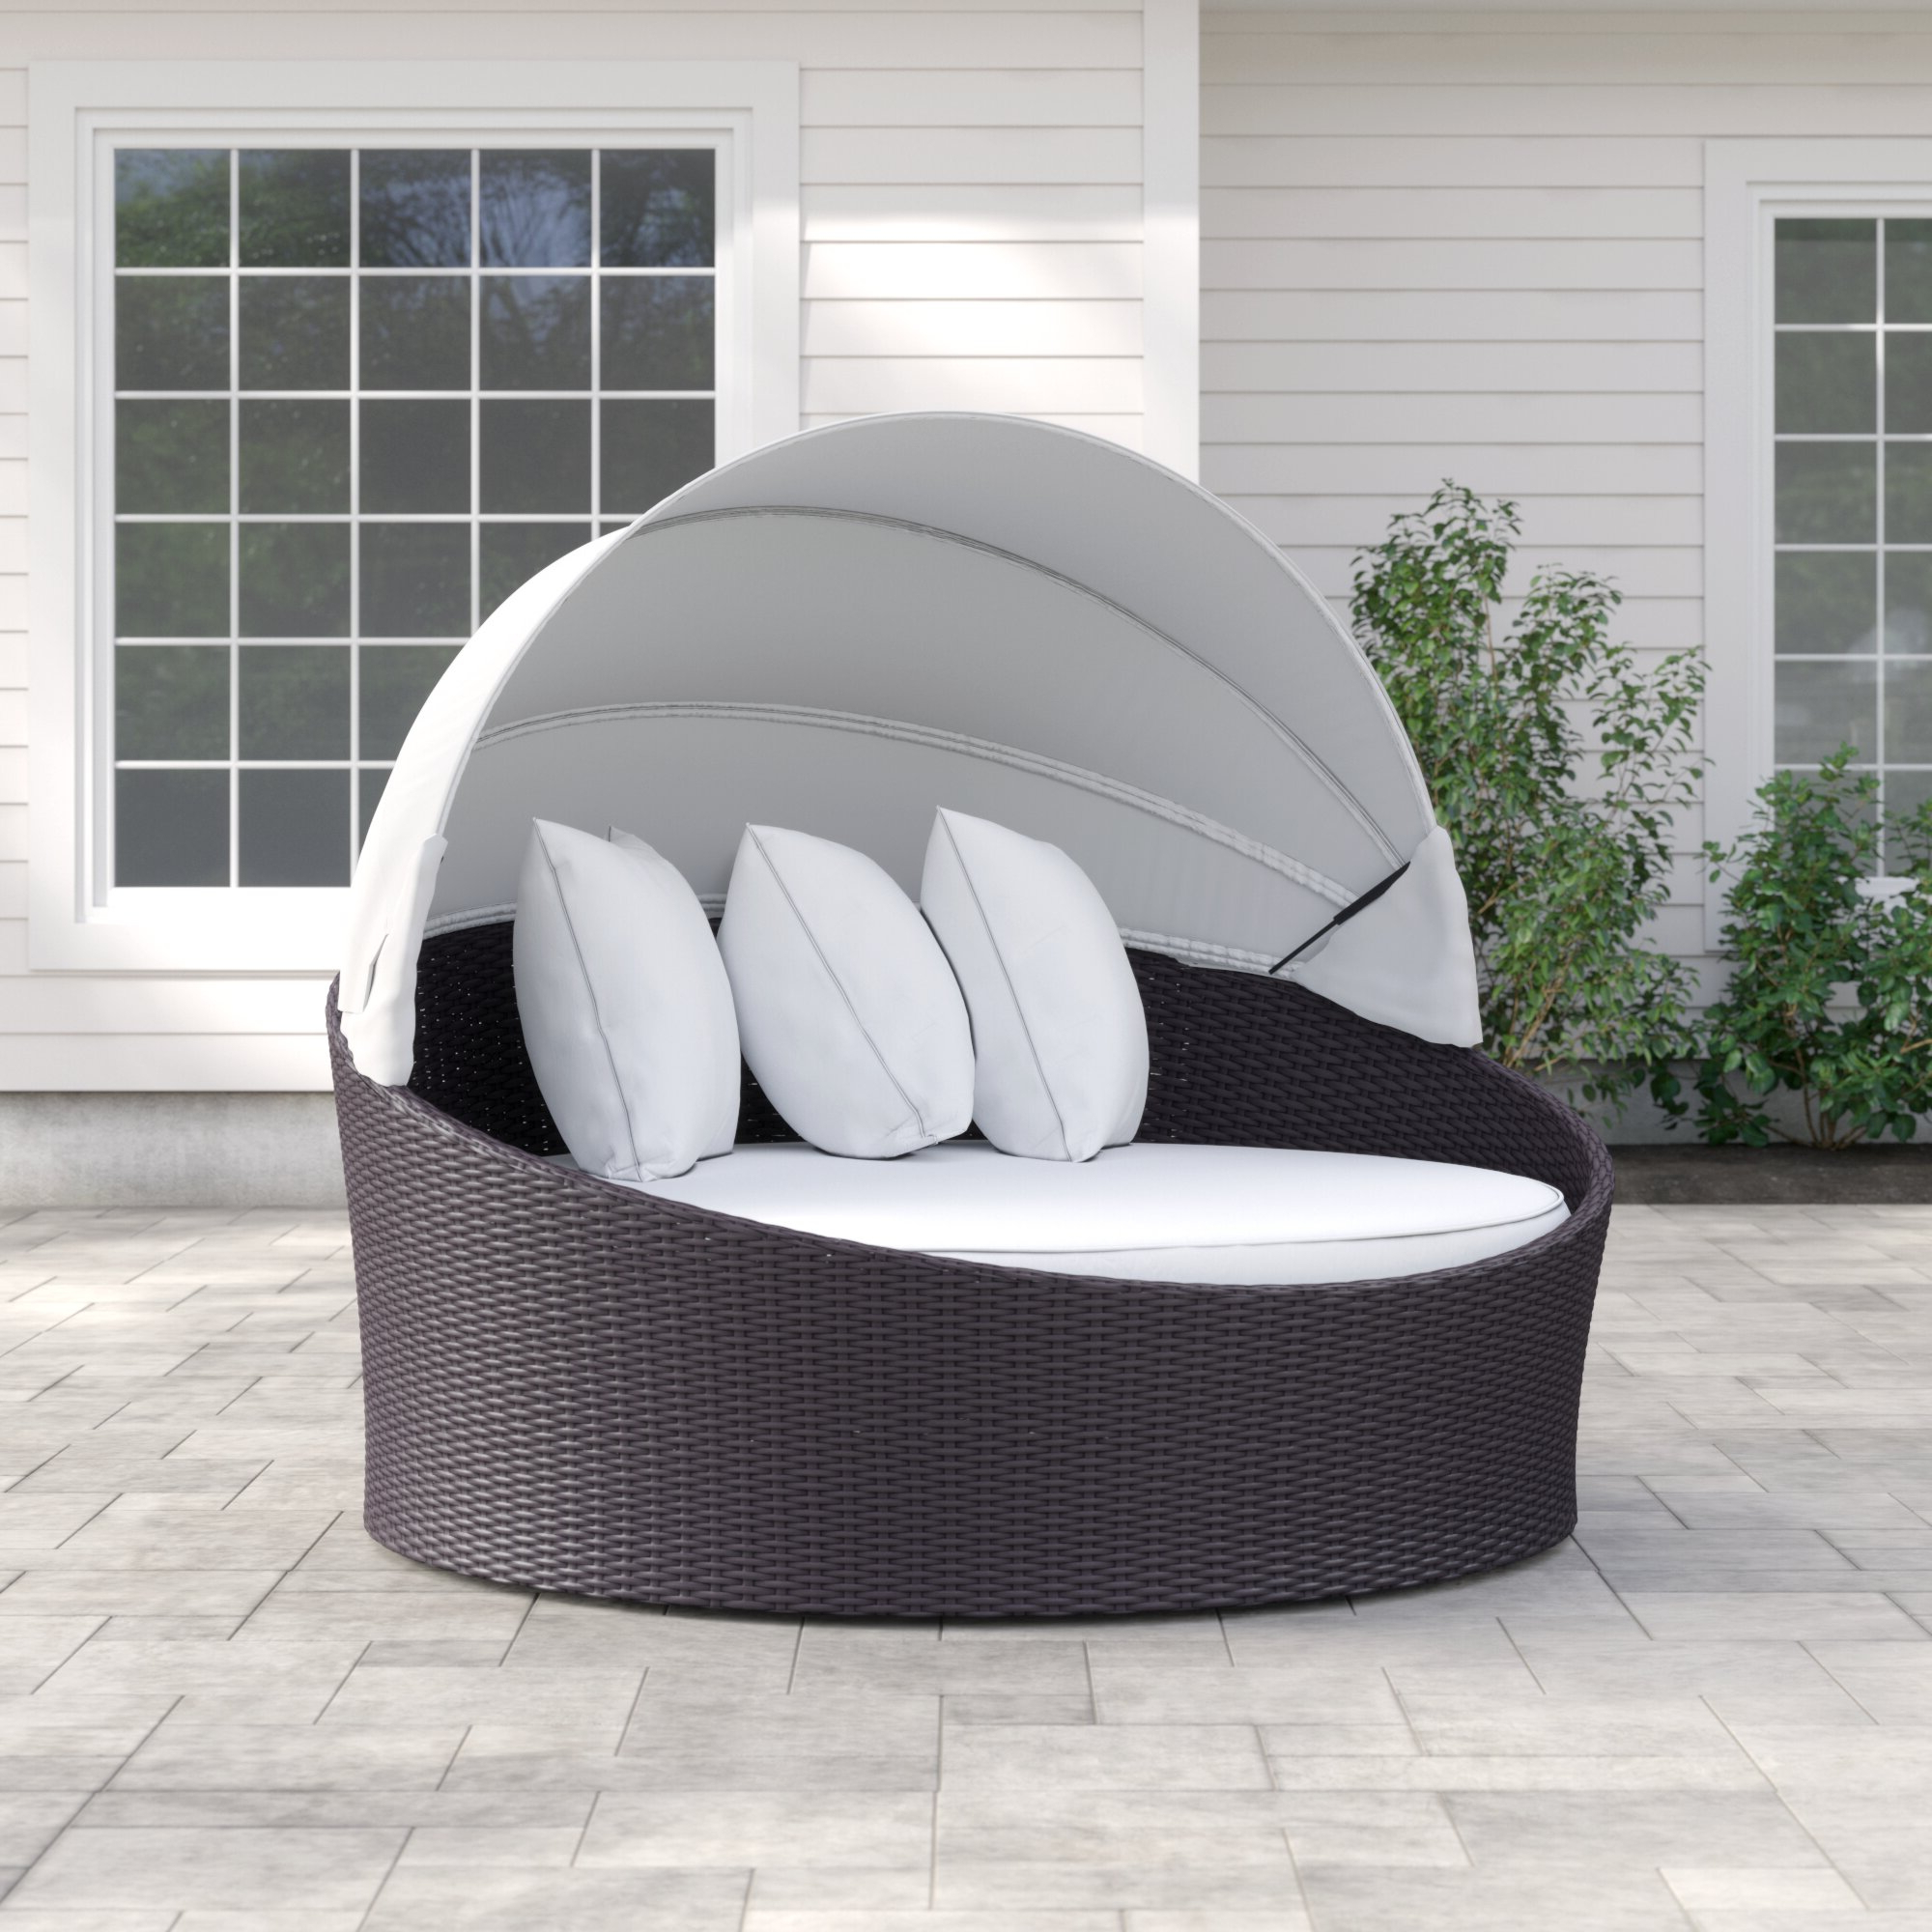 Carrasco Patio Daybeds With Cushions Inside Preferred Brentwood Canopy Patio Daybed With Cushions (View 8 of 20)